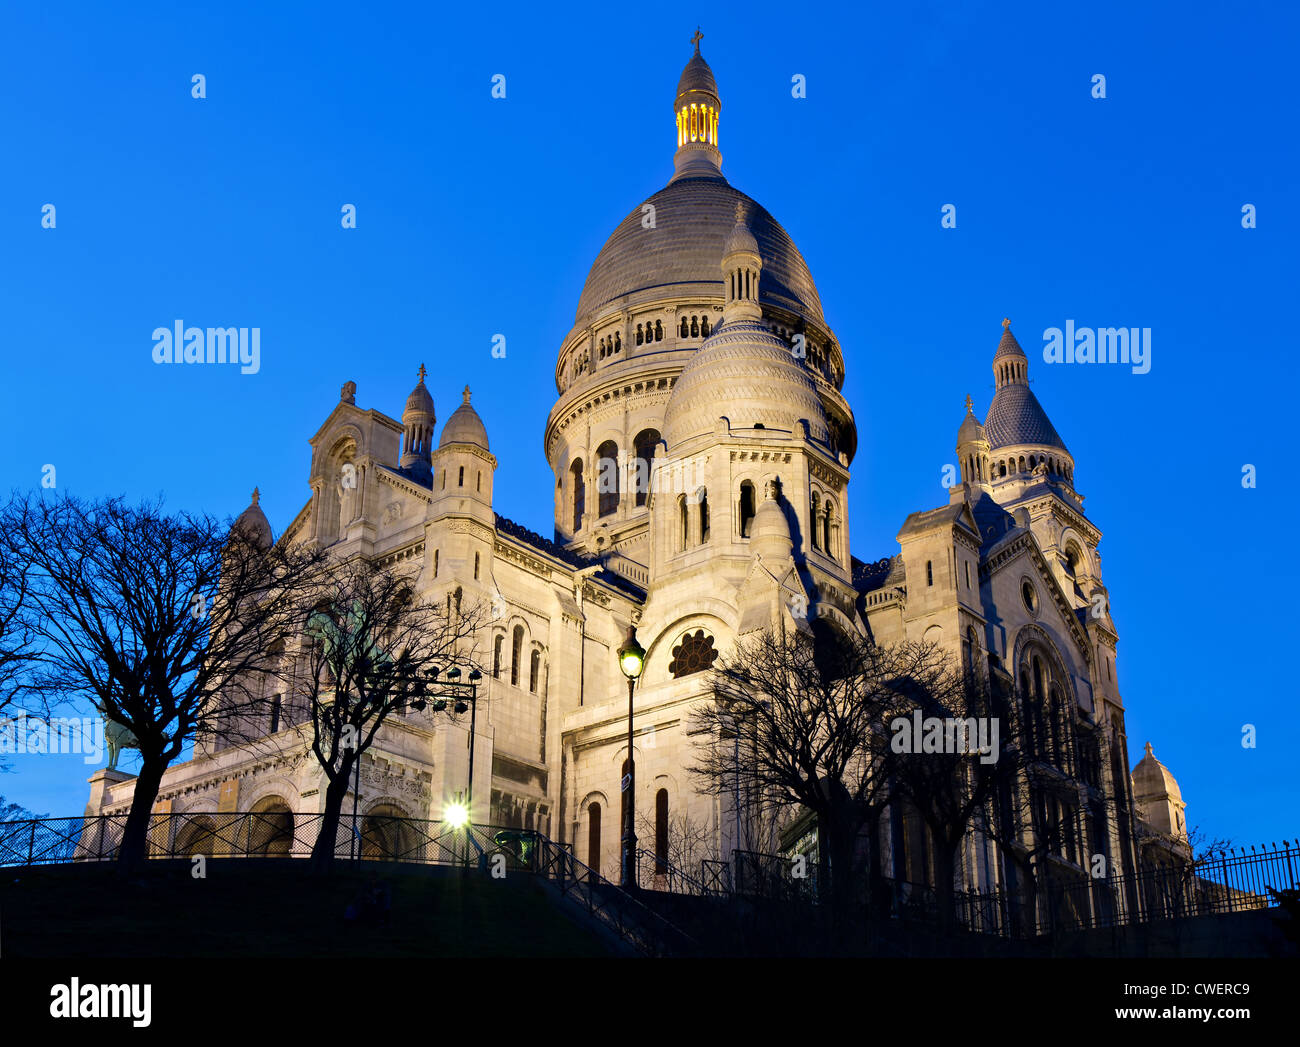 Sacre Coeur during the blue hour, Paris, France - Stock Image